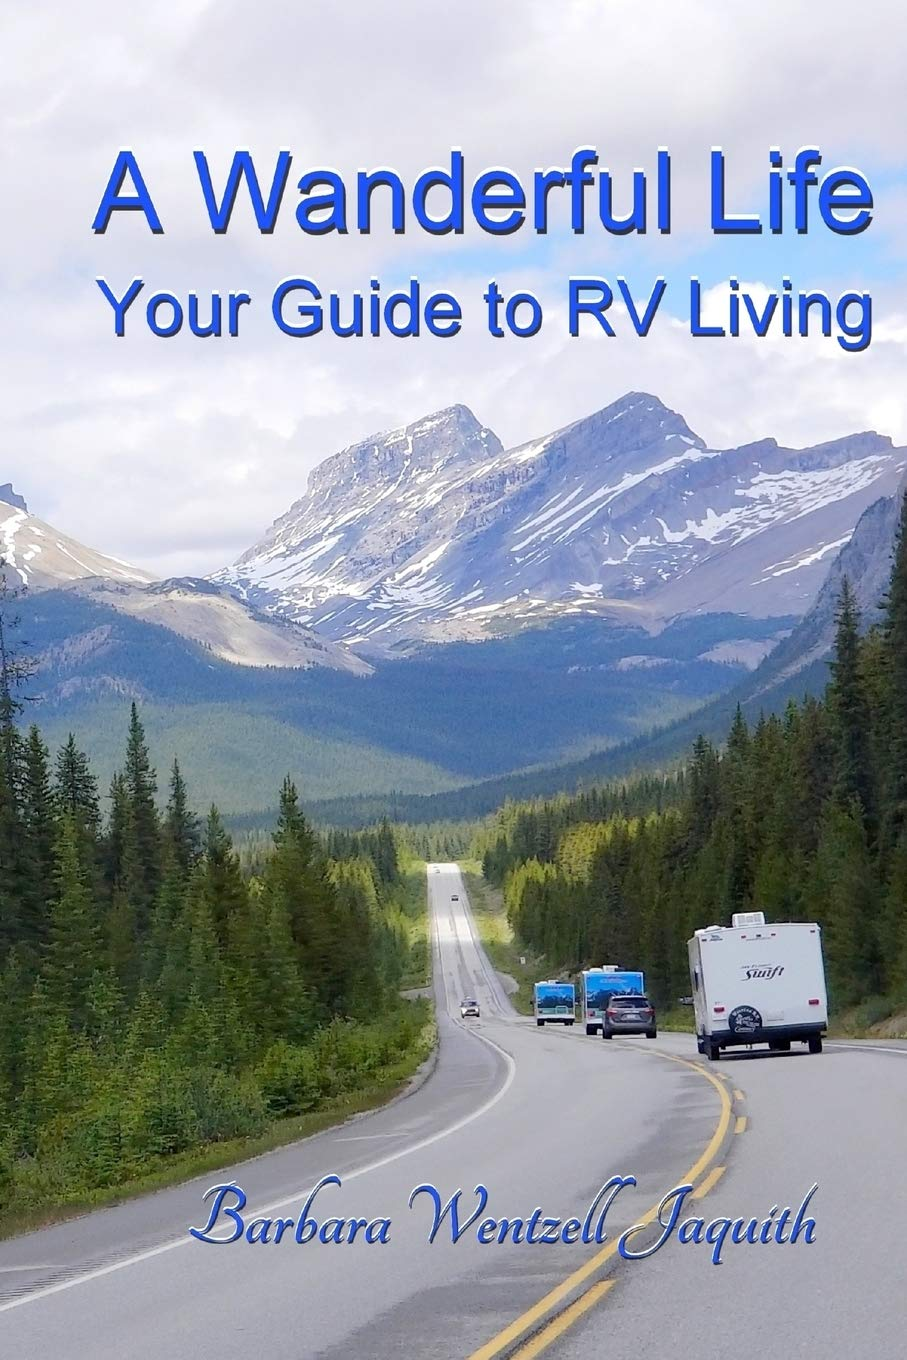 A Wanderful Life Your Guide To Rv Living Jaquith Barbara Wentzell 9780996152082 Amazon Com Books